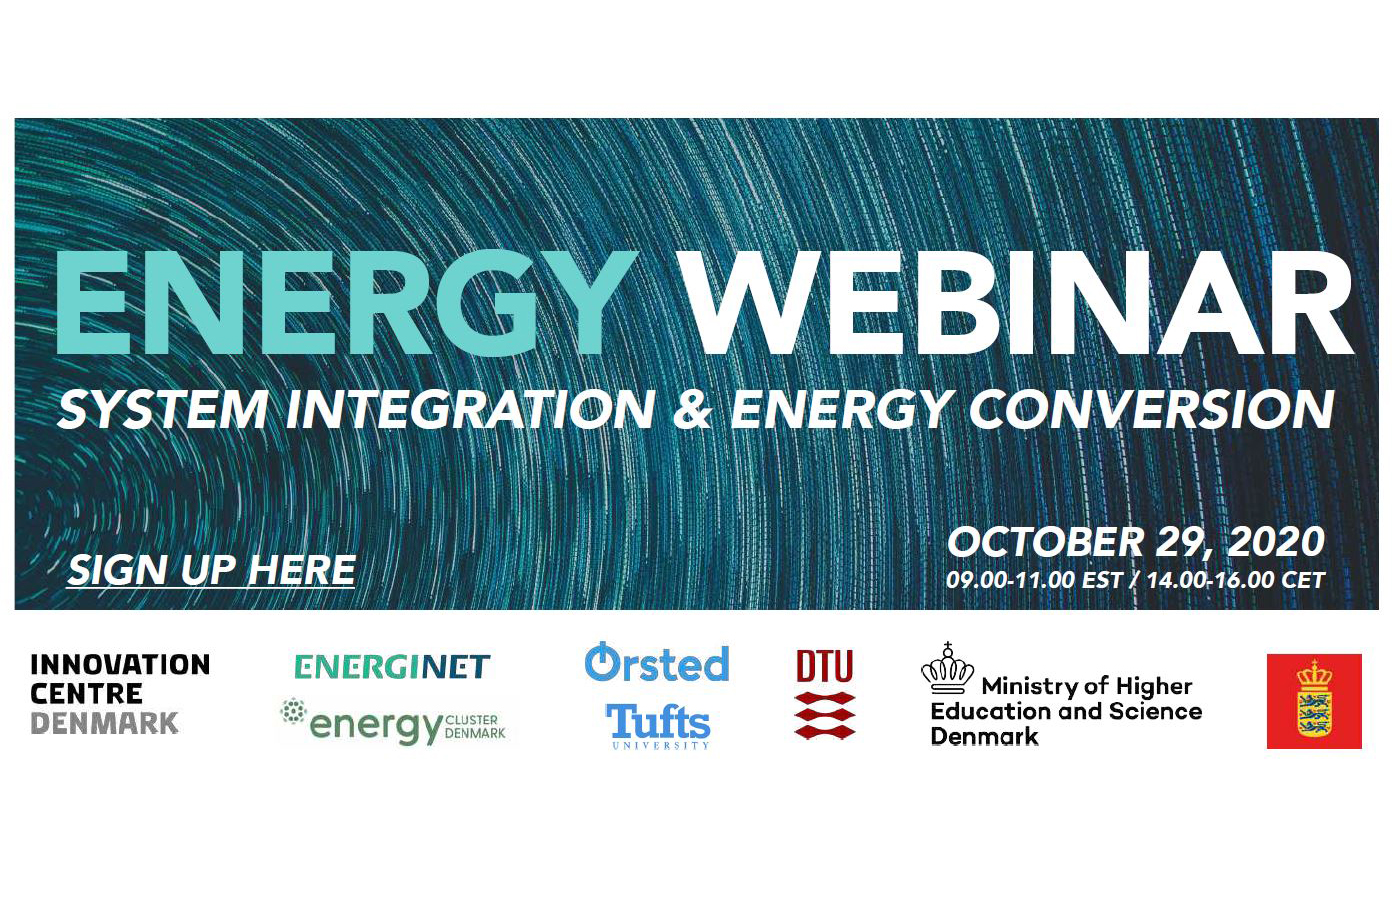 poster showing the title, date, and sponsors of the event: Energy Webinar